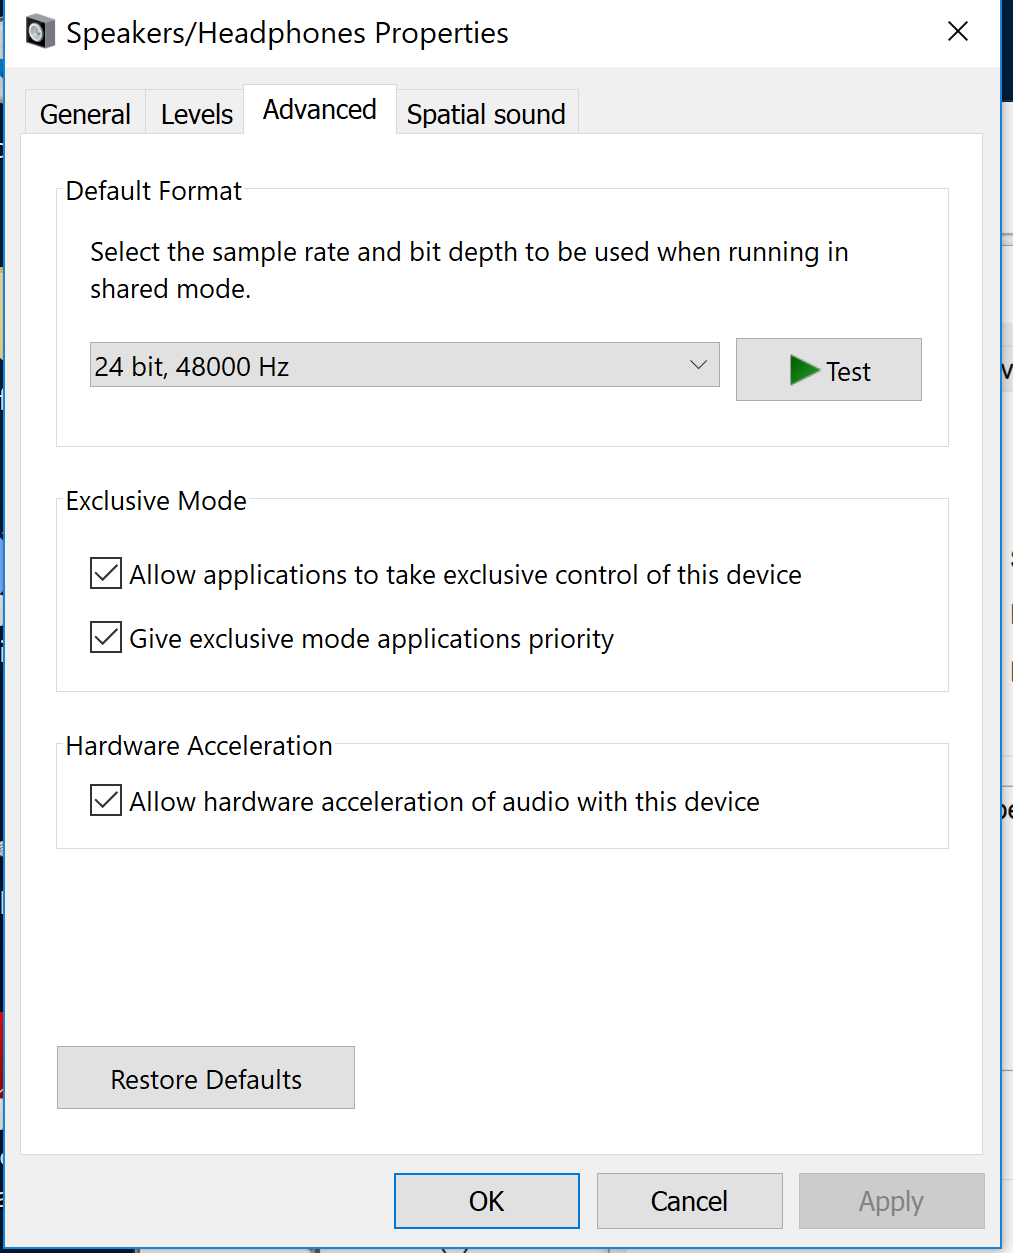 How do I properly set up the 'Loudness Equalization aVNw6.png